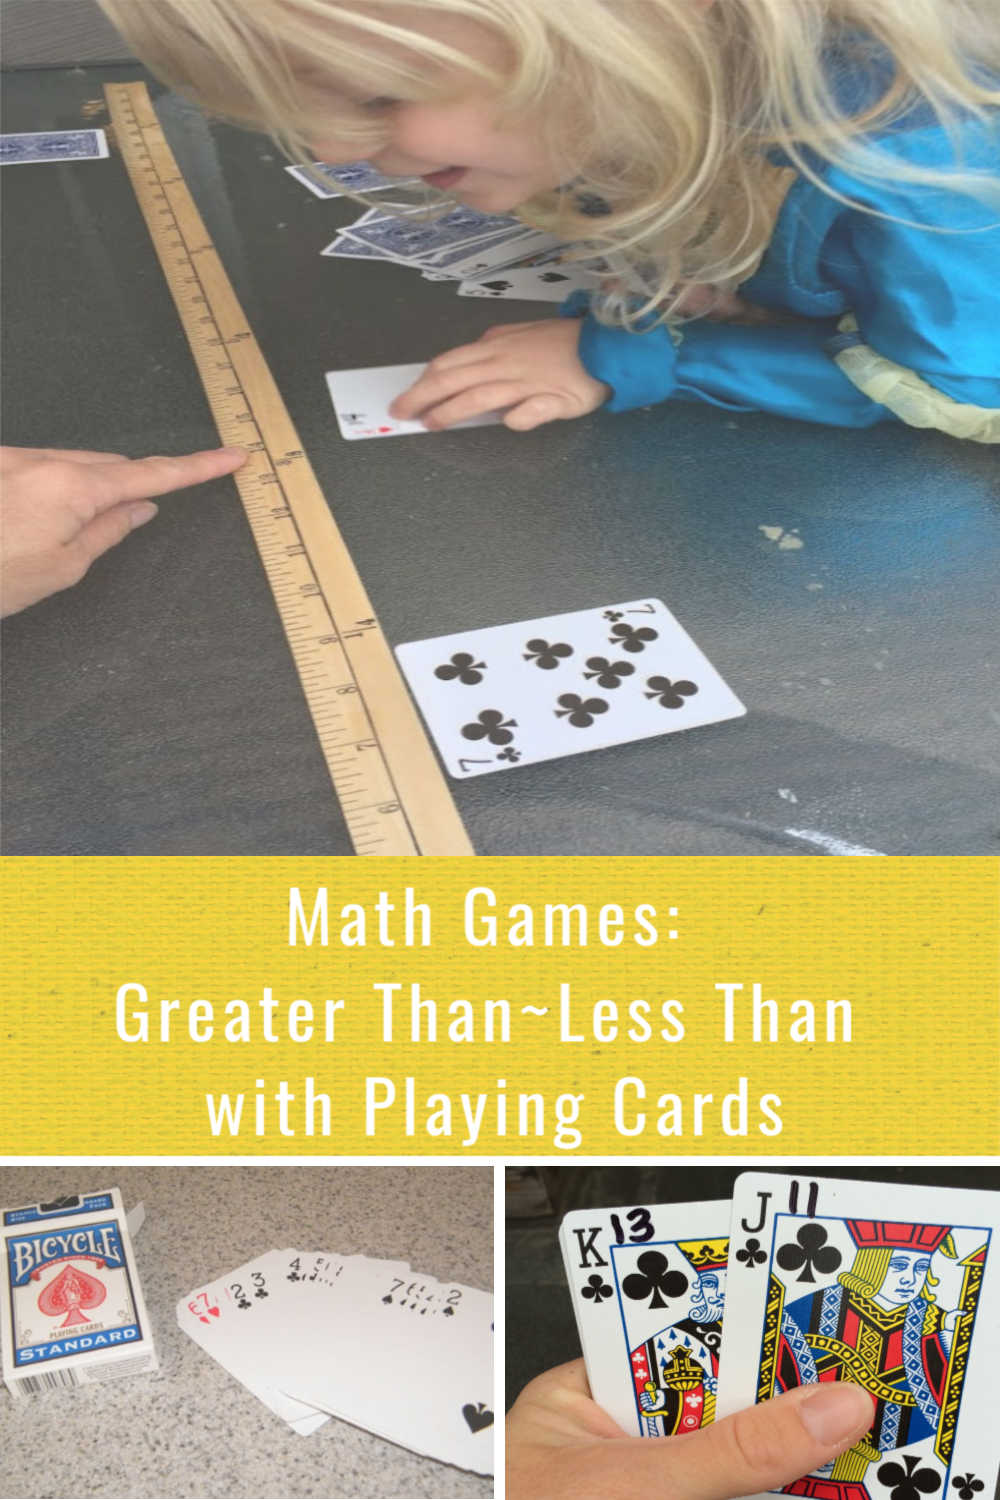 Learning greater than less than with playing cards builds number sense and math skills with a hands-on activity for kindergarten and early elementary age kids.